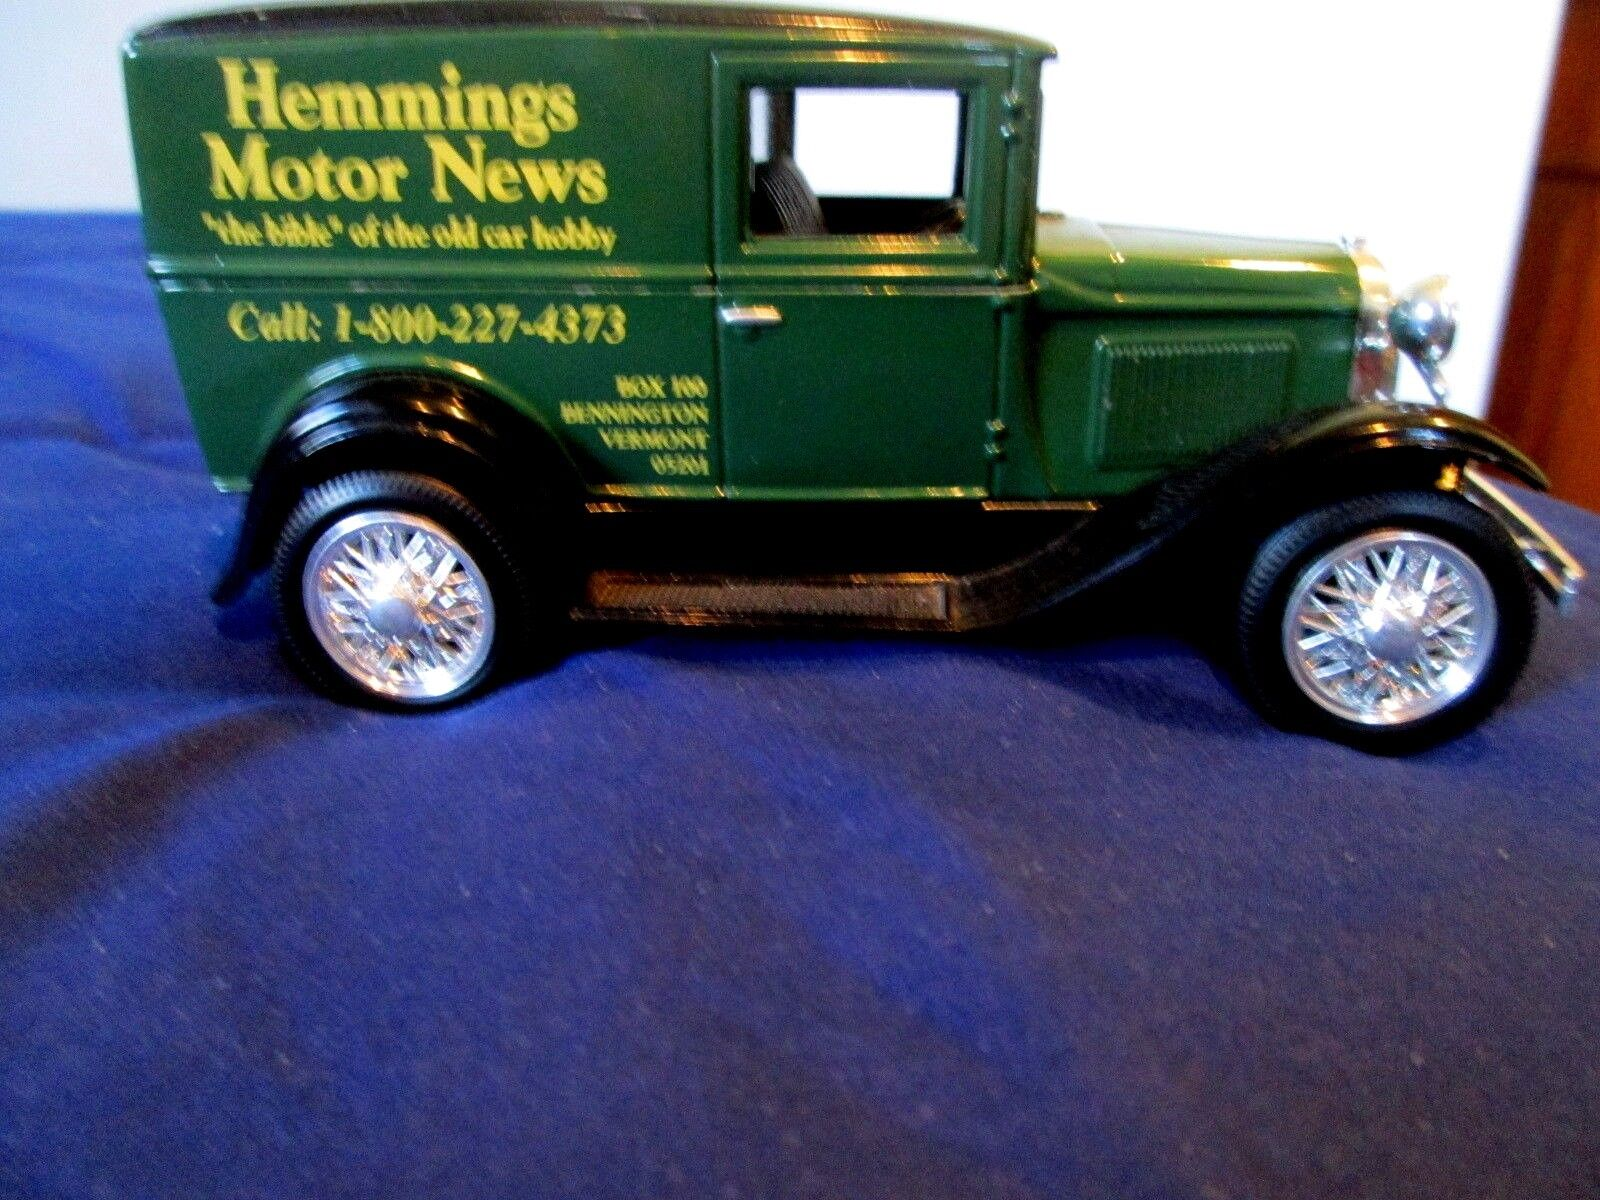 1931 FORD FORD FORD MODEL A DELIVERY VAN  - HEMMINGS MOTOR NEWS - 1 25 SCALE BY LIBERTY 9db3bb